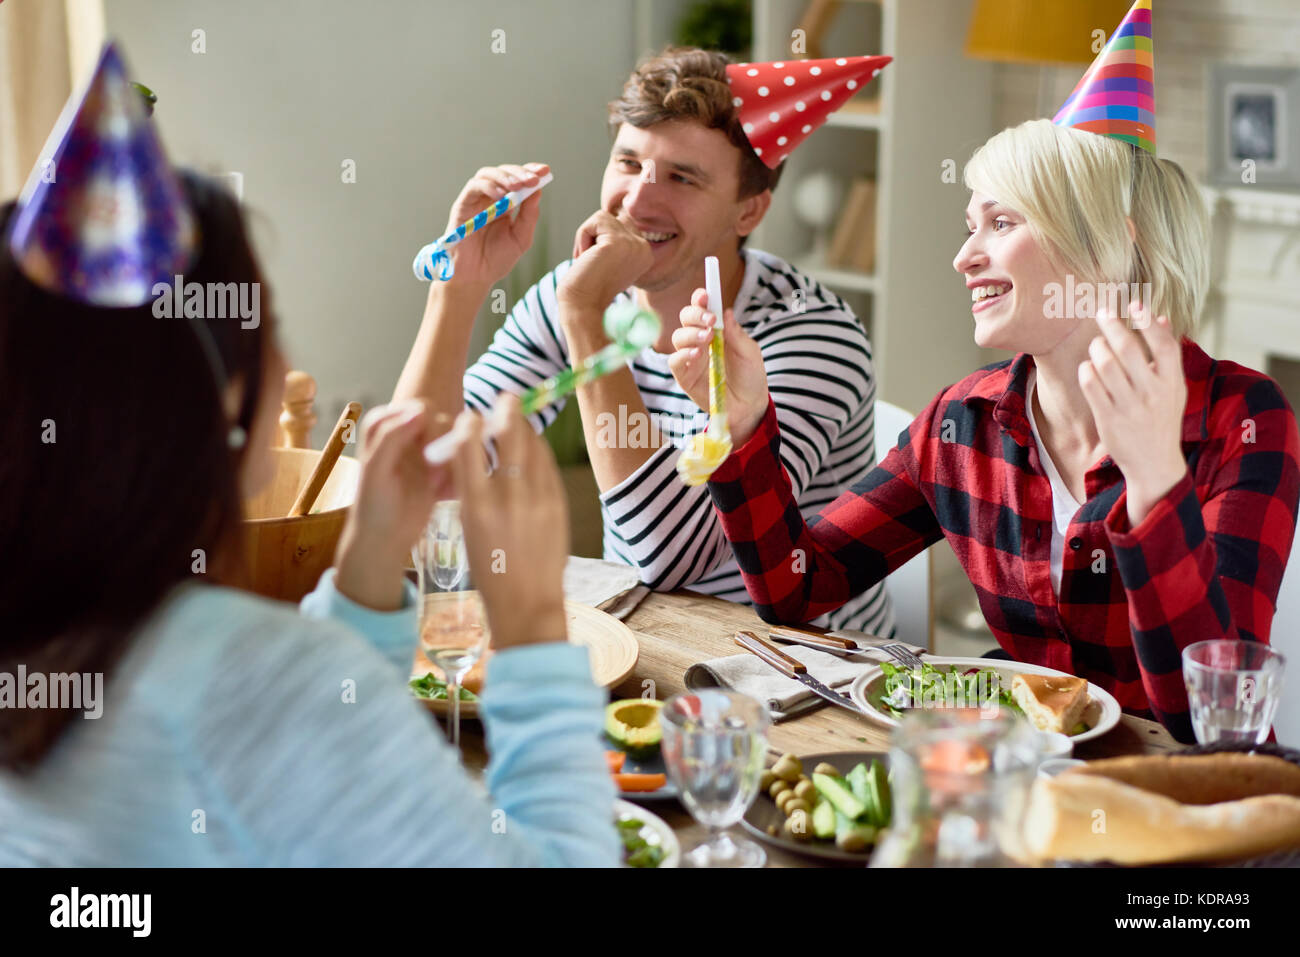 Happy Couples Celebrating Birthday  at Dinner Table - Stock Image